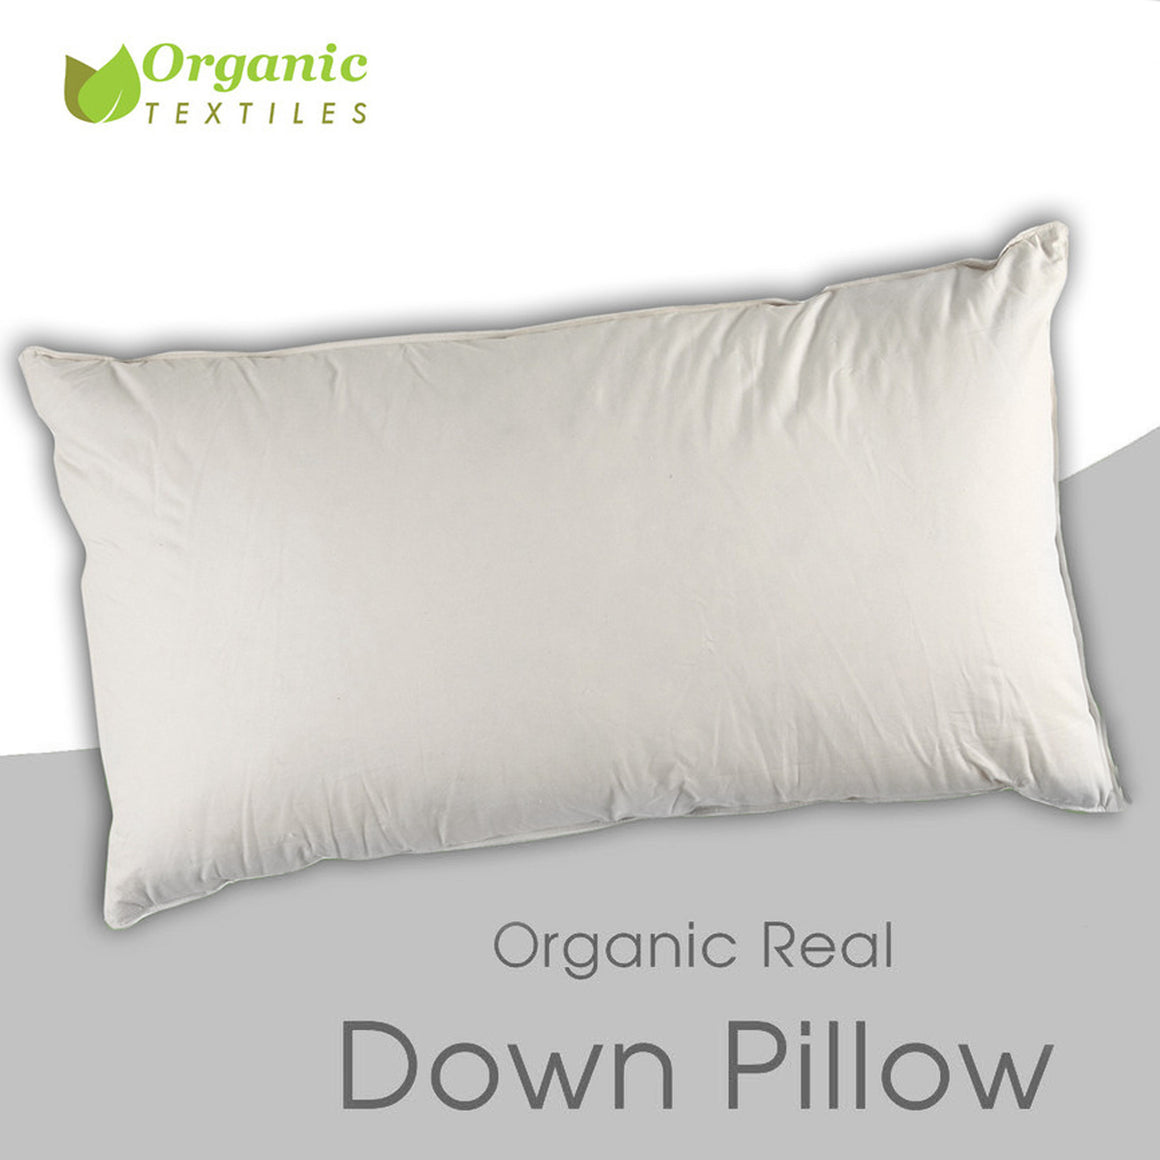 Real Down Pillow in Organic Cotton Cover - MyOrganicSleep